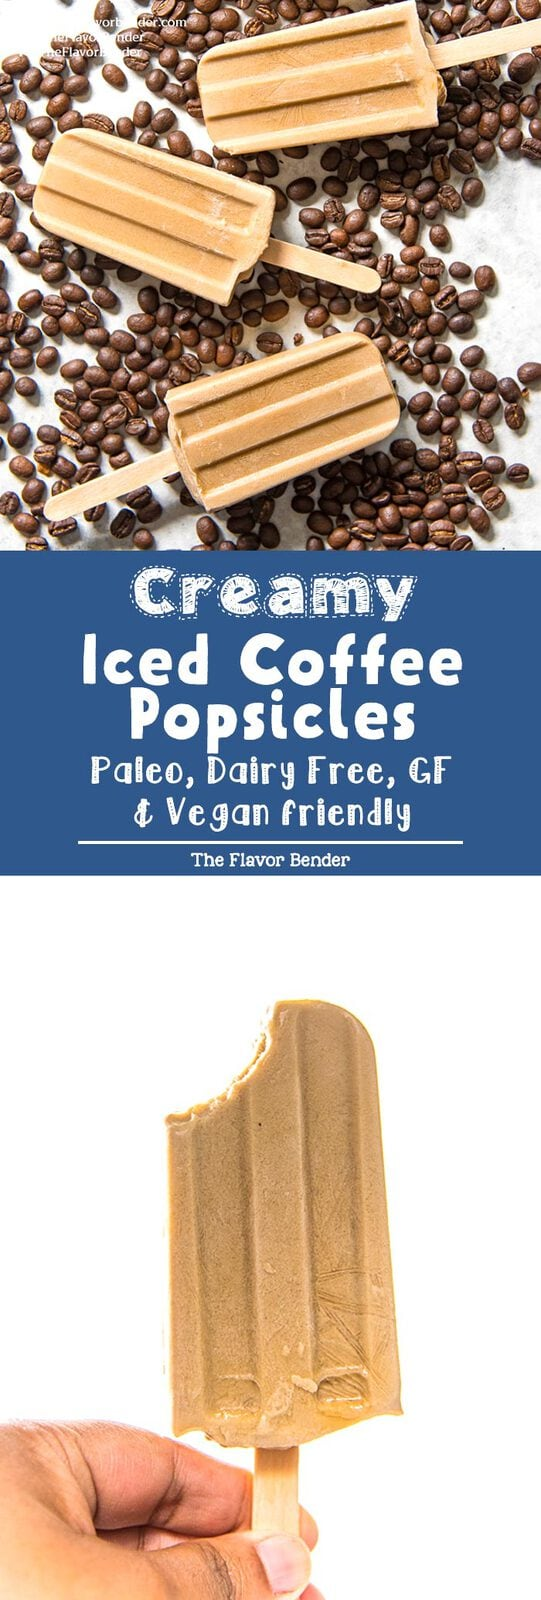 Iced Coffee Popsicles - A creamy coconut milk breakfast popsicle that is made with just 4 ingredients and is gluten free, dairy free, paleo, and vegan-friendly as well! #Breakfast #Dessert #Popsicles #IcedCoffee #PaleoDesserts